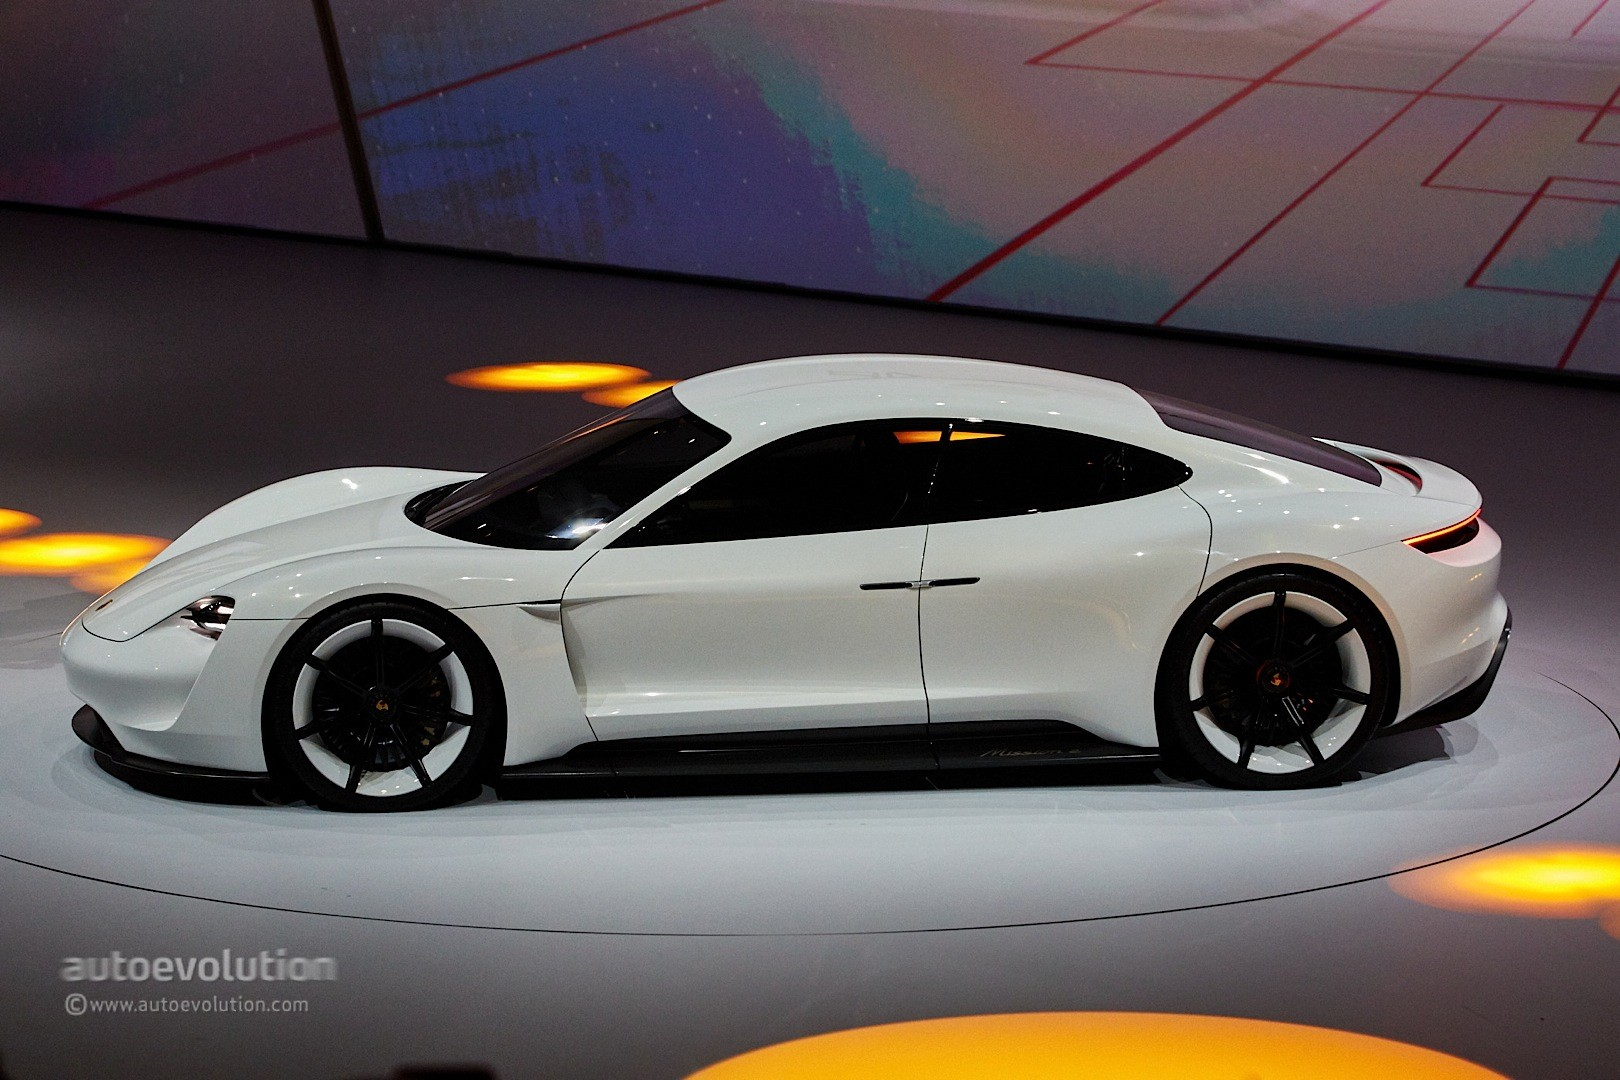 Porsche Mission E Concept Revealed In Frankfurt With 600 Electric Horses Video 99912 on solar cars